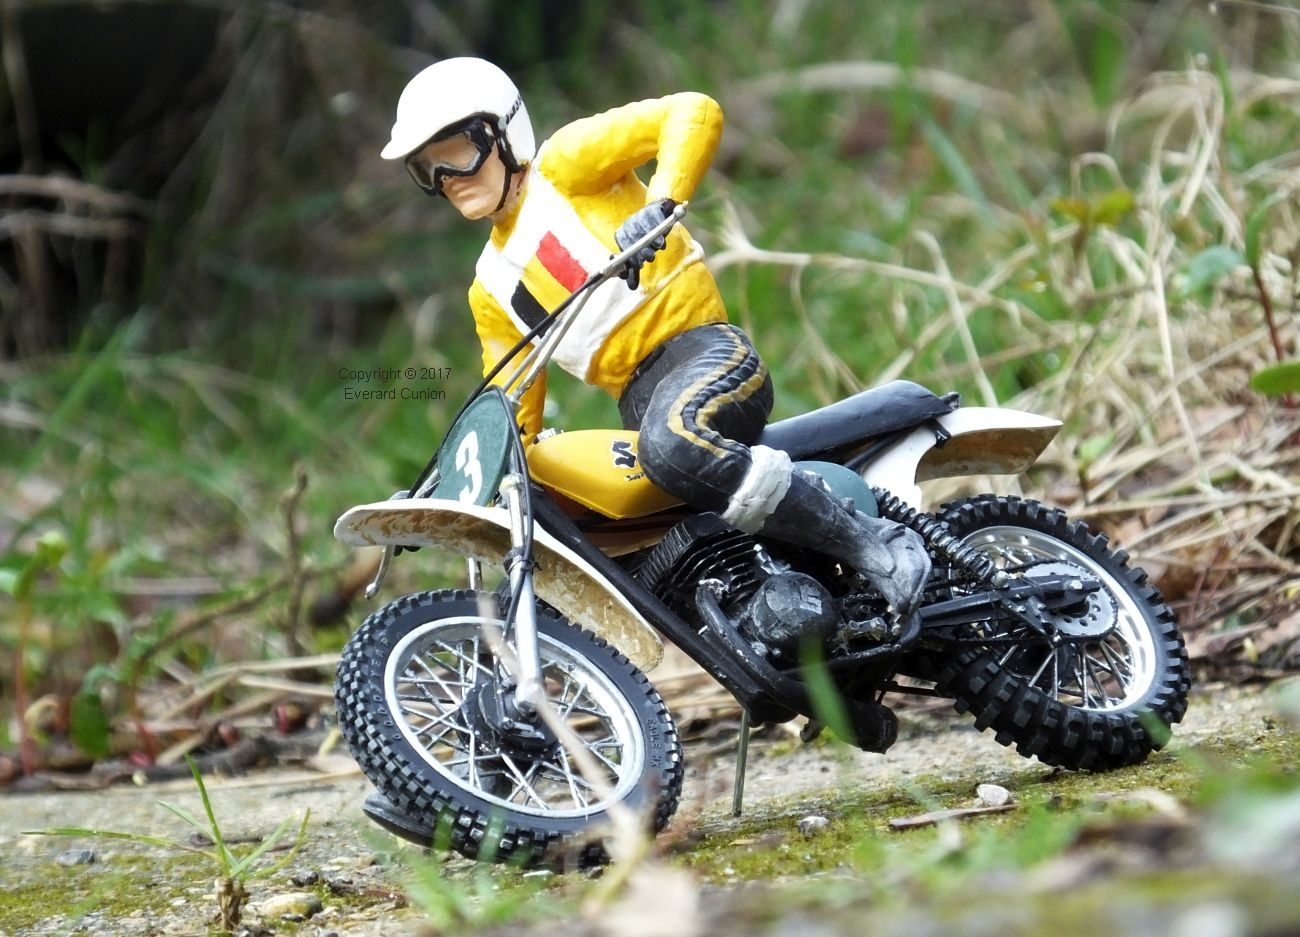 motocross in miniature everard cunion 39 s articles and images. Black Bedroom Furniture Sets. Home Design Ideas